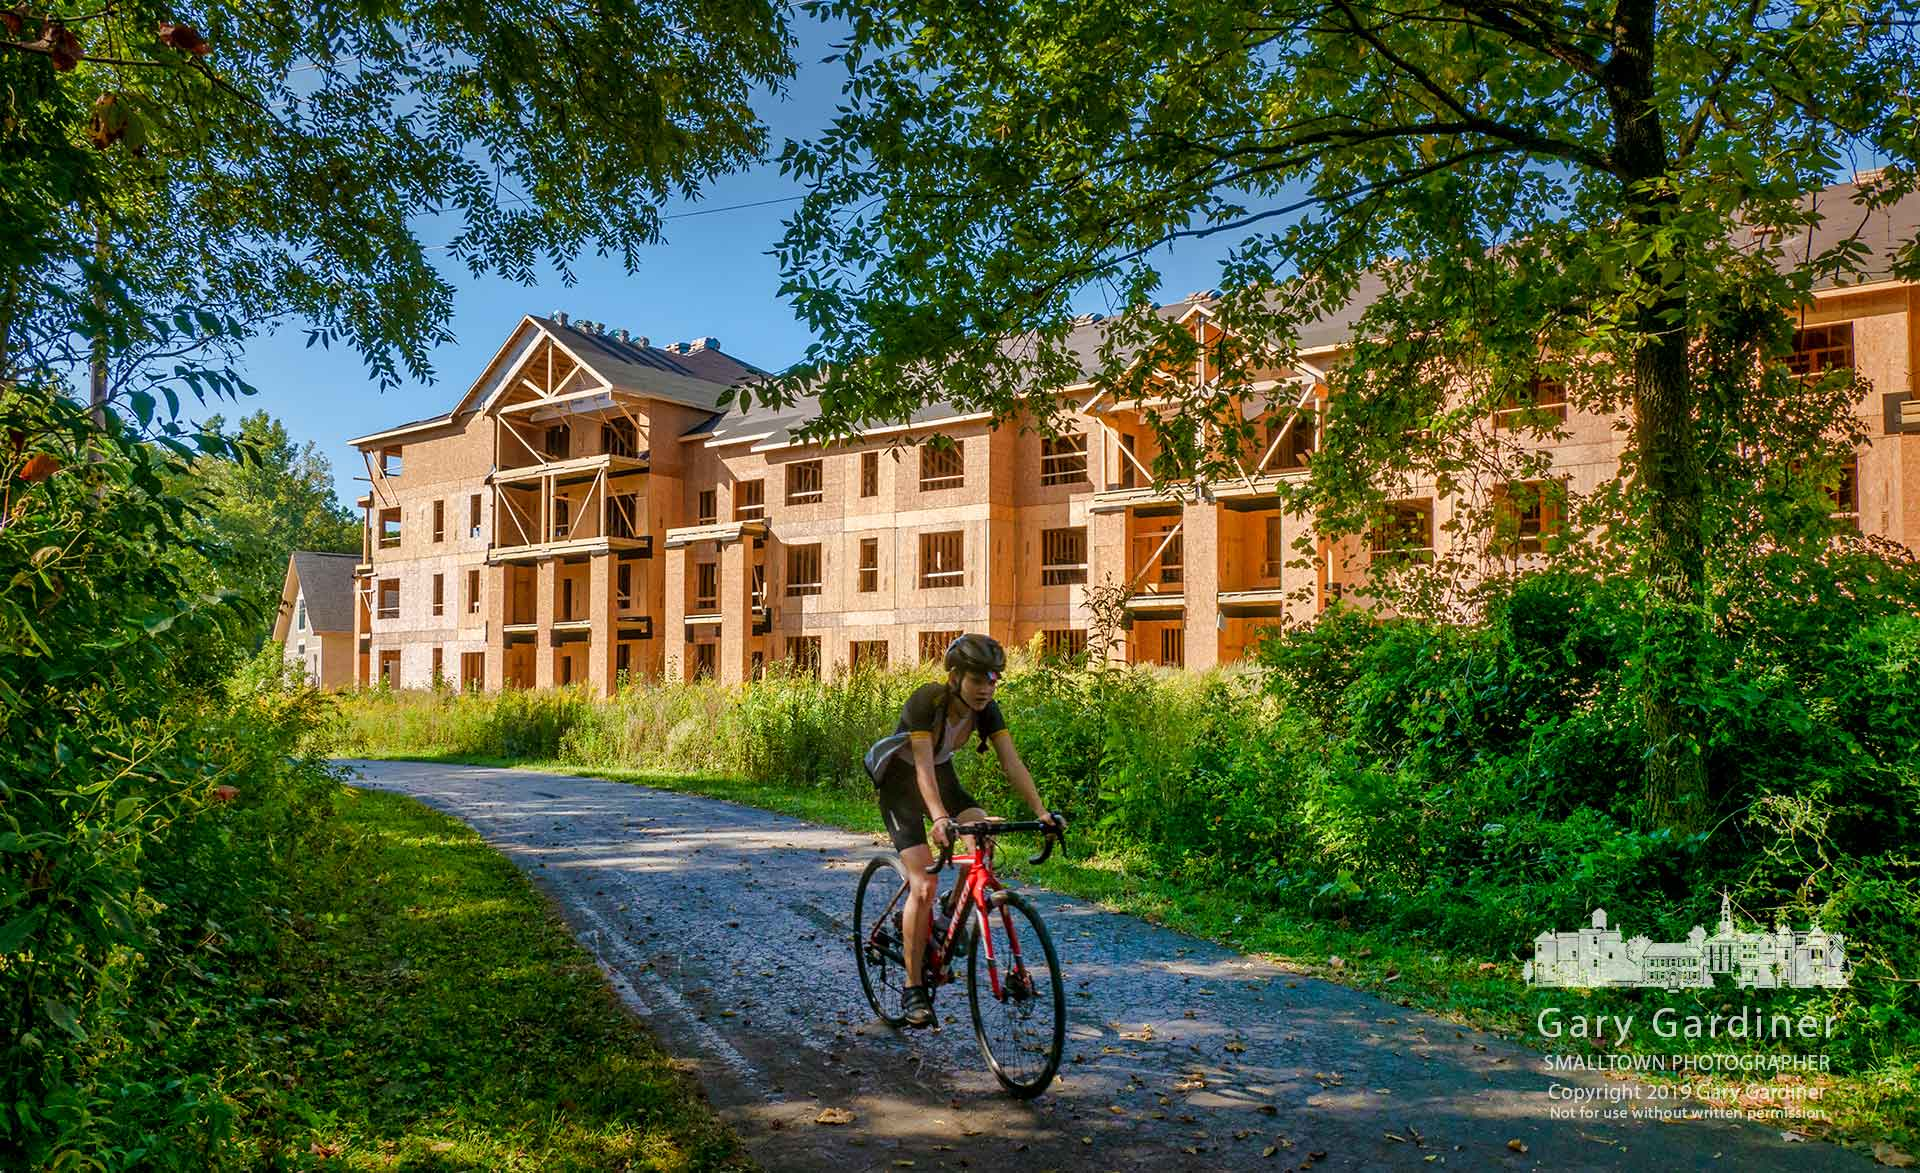 A bicyclist travels along a section of the Alum Creek bike path past a section of the apartments being built between the path and Cooper Road. My Final Photo for Sept. 18, 2019.